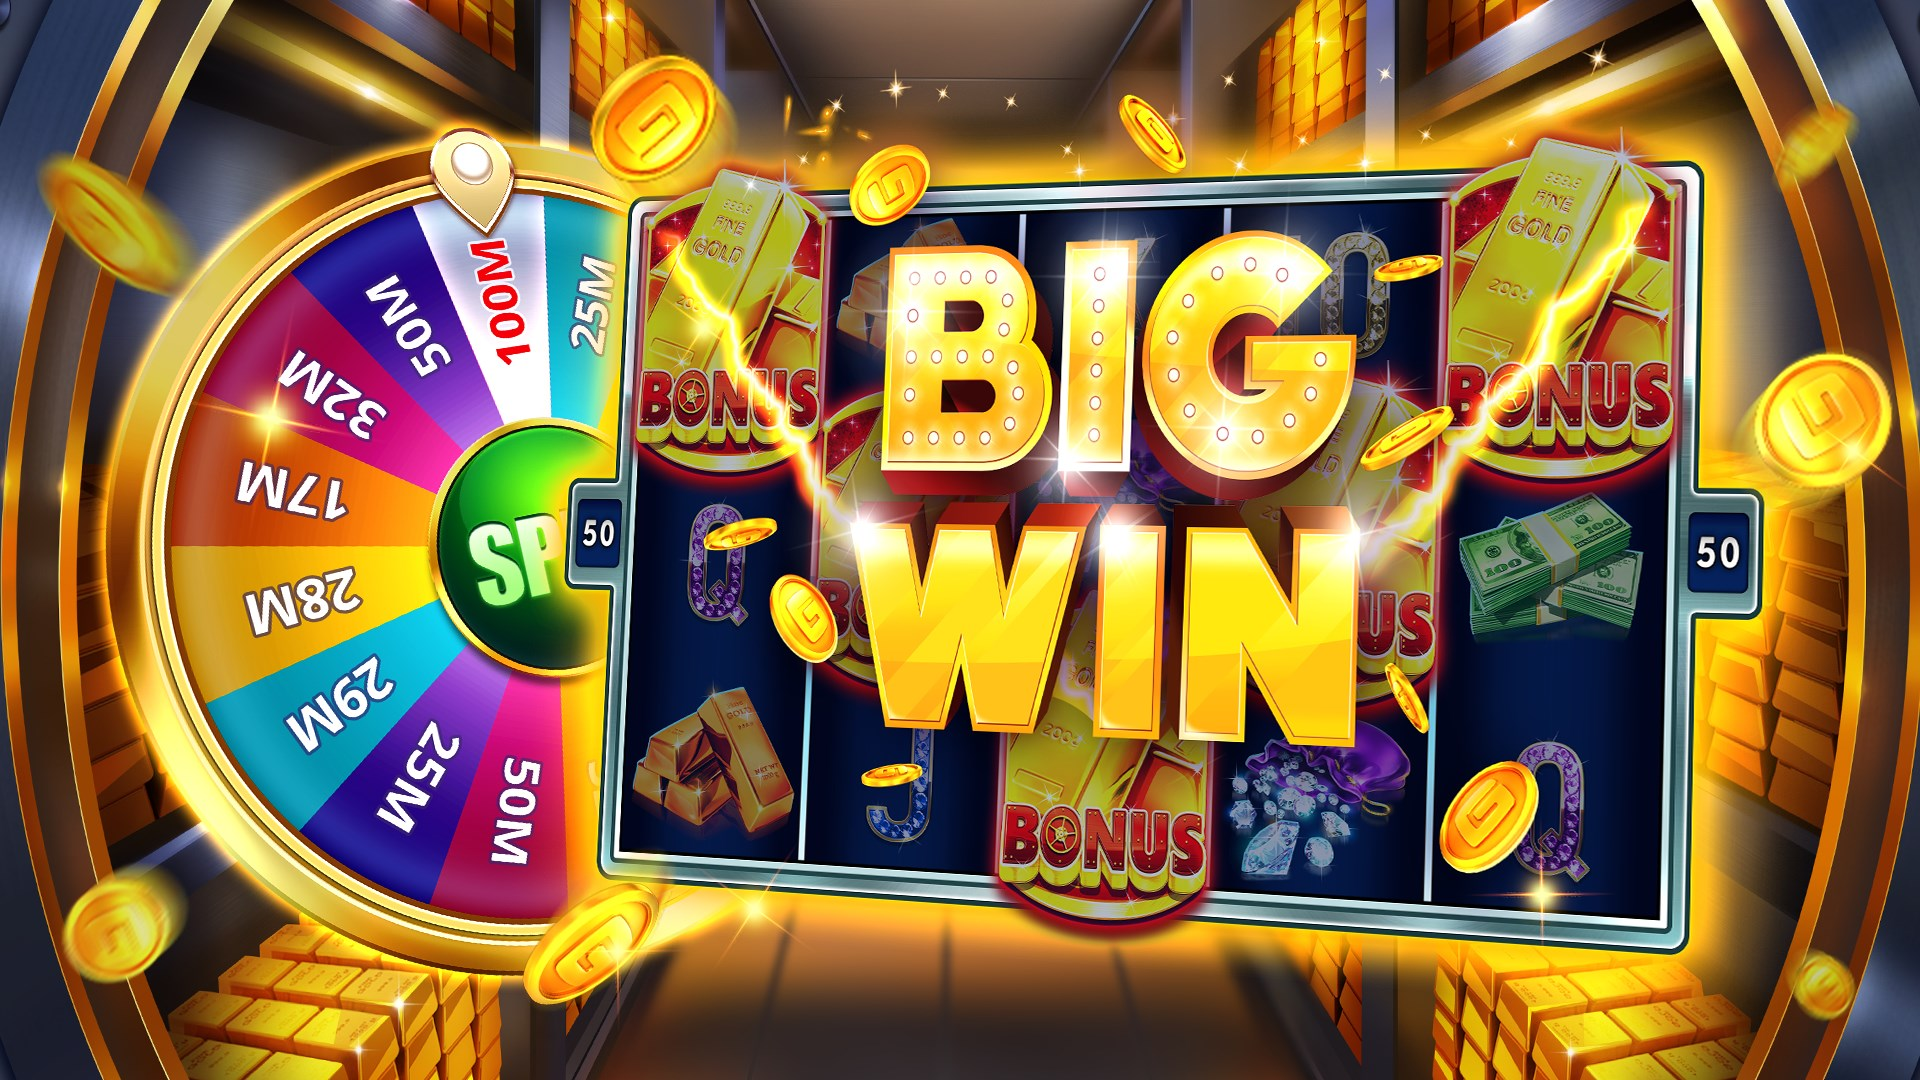 Play Free Slot Games Online With Bonus